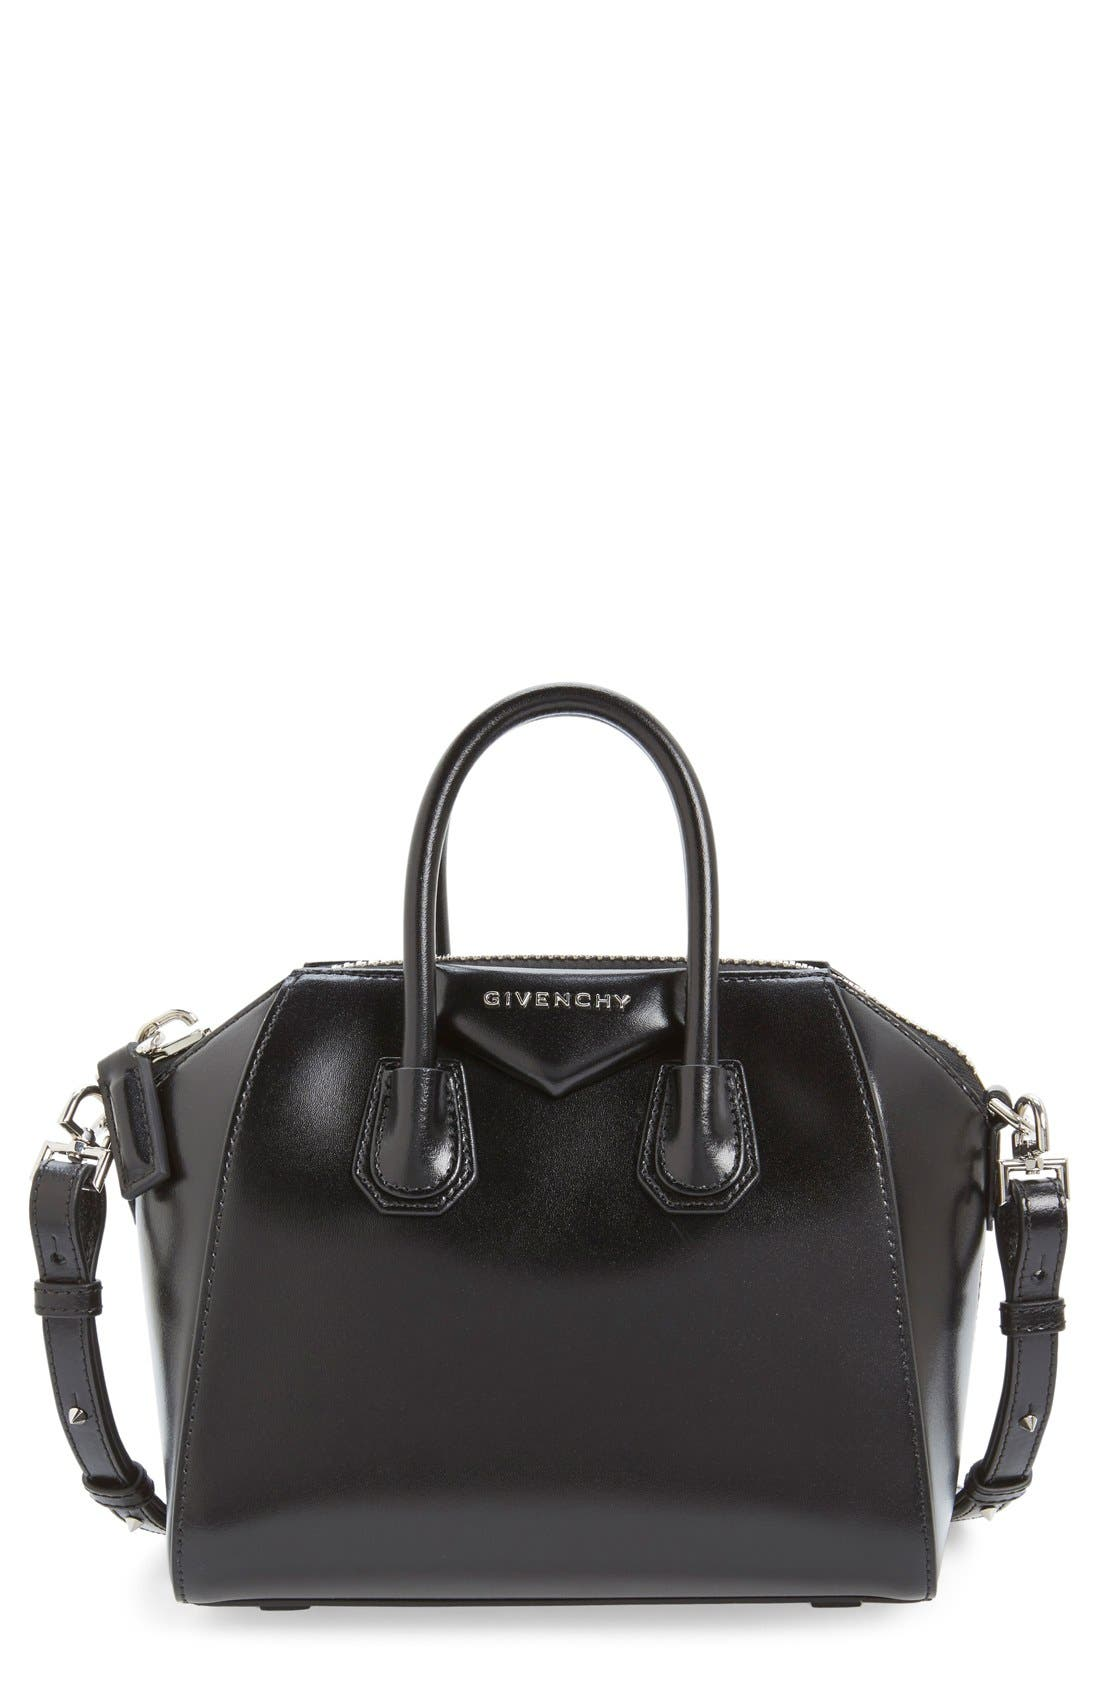 Alternate Image 1 Selected - Givenchy 'Mini Antigona' Box Leather Satchel